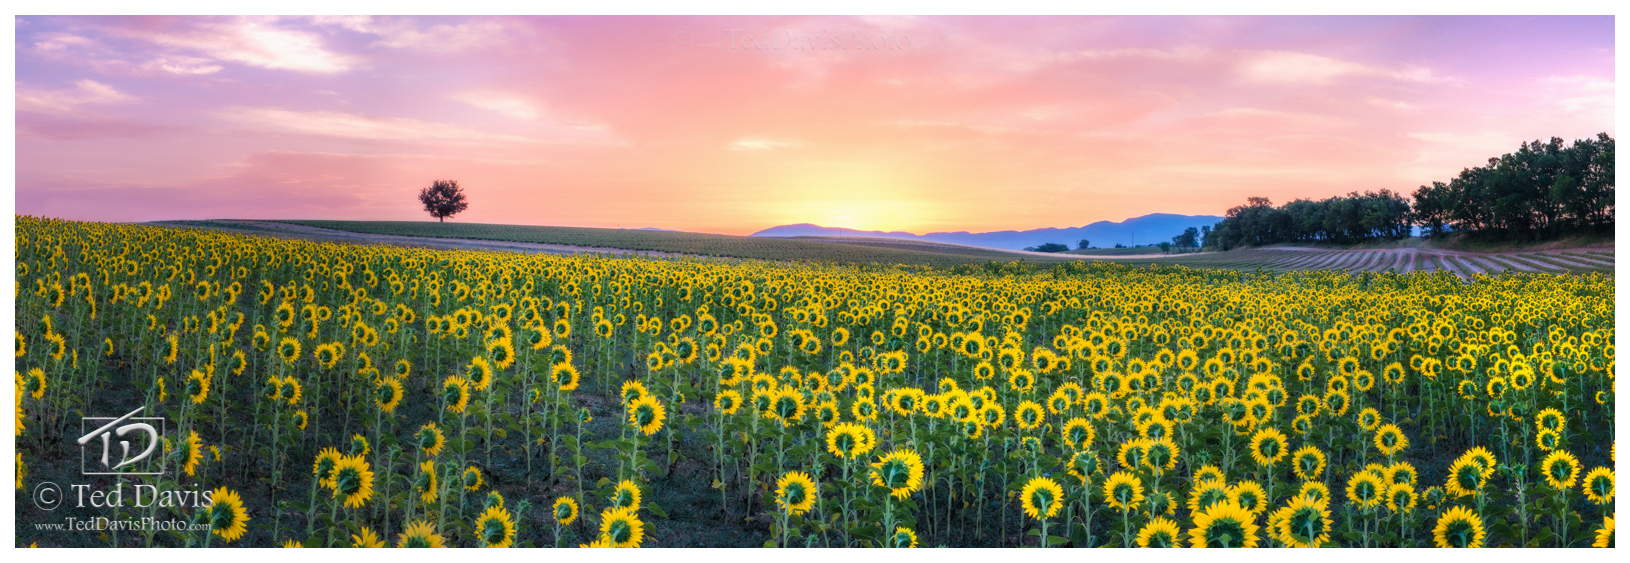 France, Provonce, Sunflower, Fairy, Magical, Field, Sun, Pink, Orange, Purple, Gold, Horizon, photo